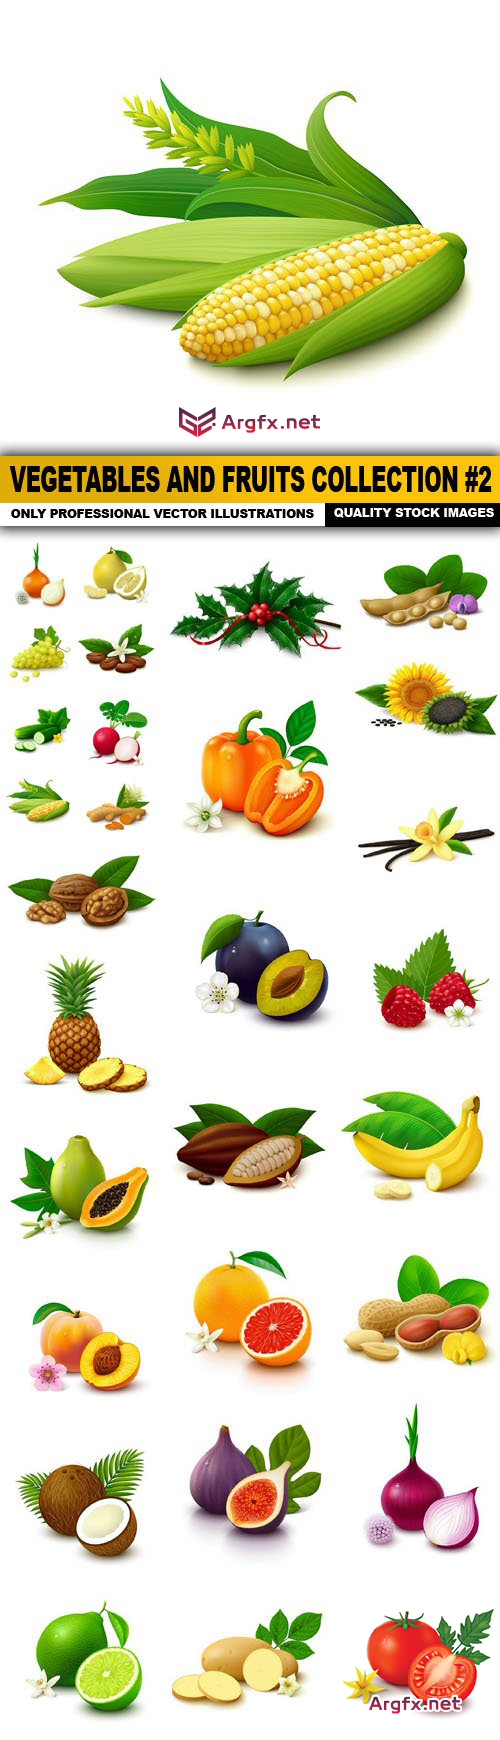 Vegetables And Fruits Collection #2 - 30 Vector